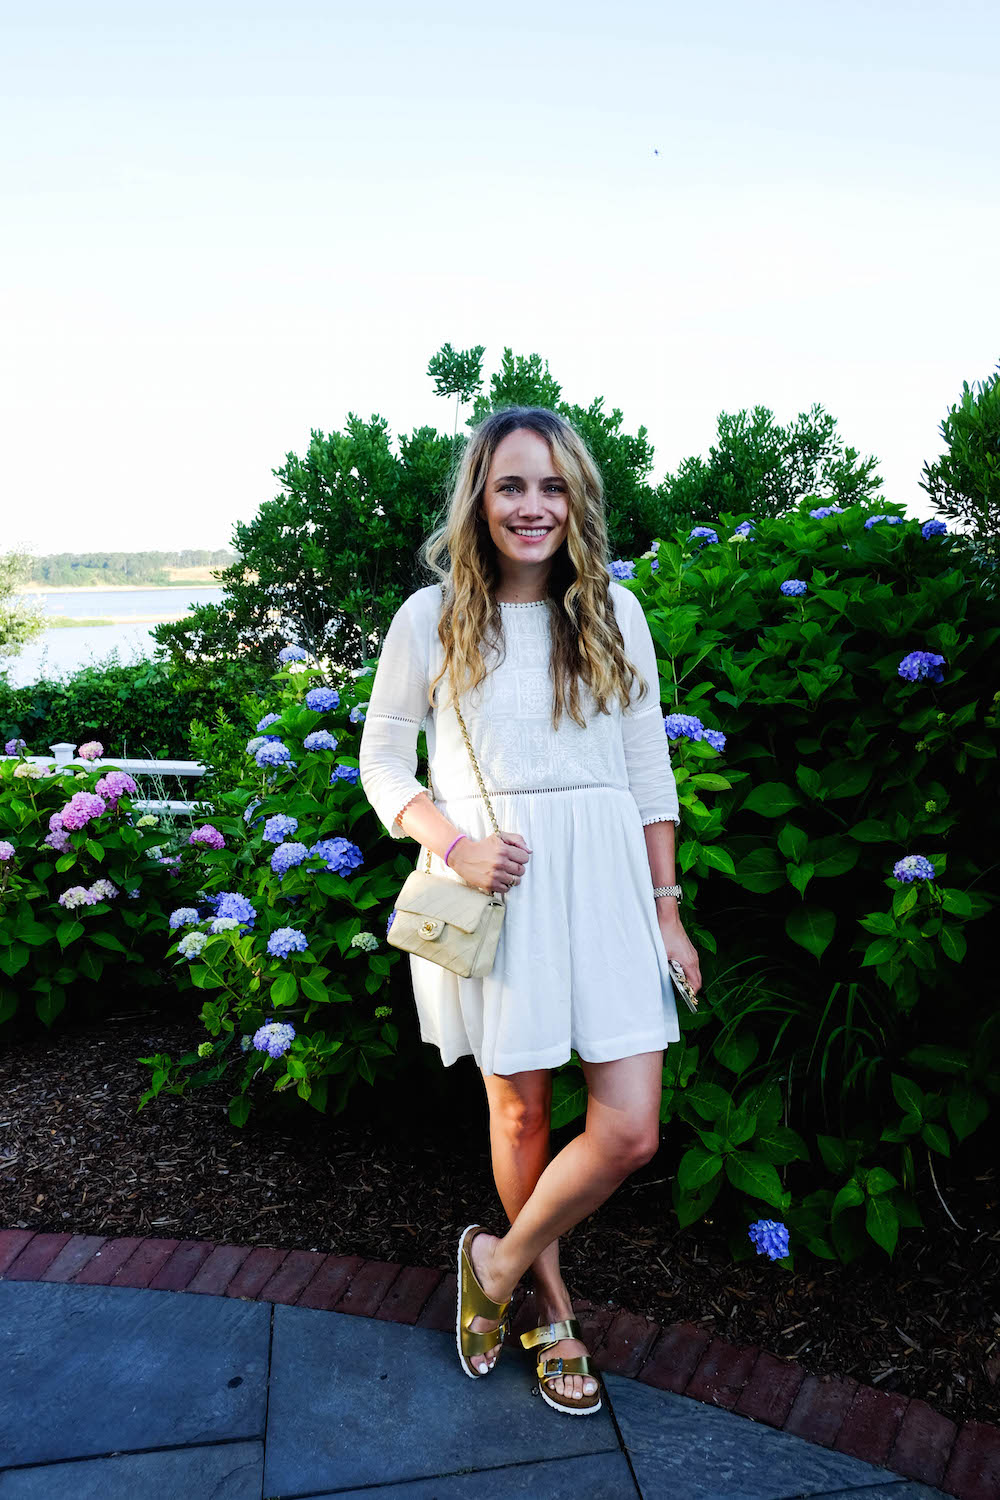 The Wequassett Resort and Golf Club - Grace Atwood, Suncoo Dress, Gold Birkenstock Sandals